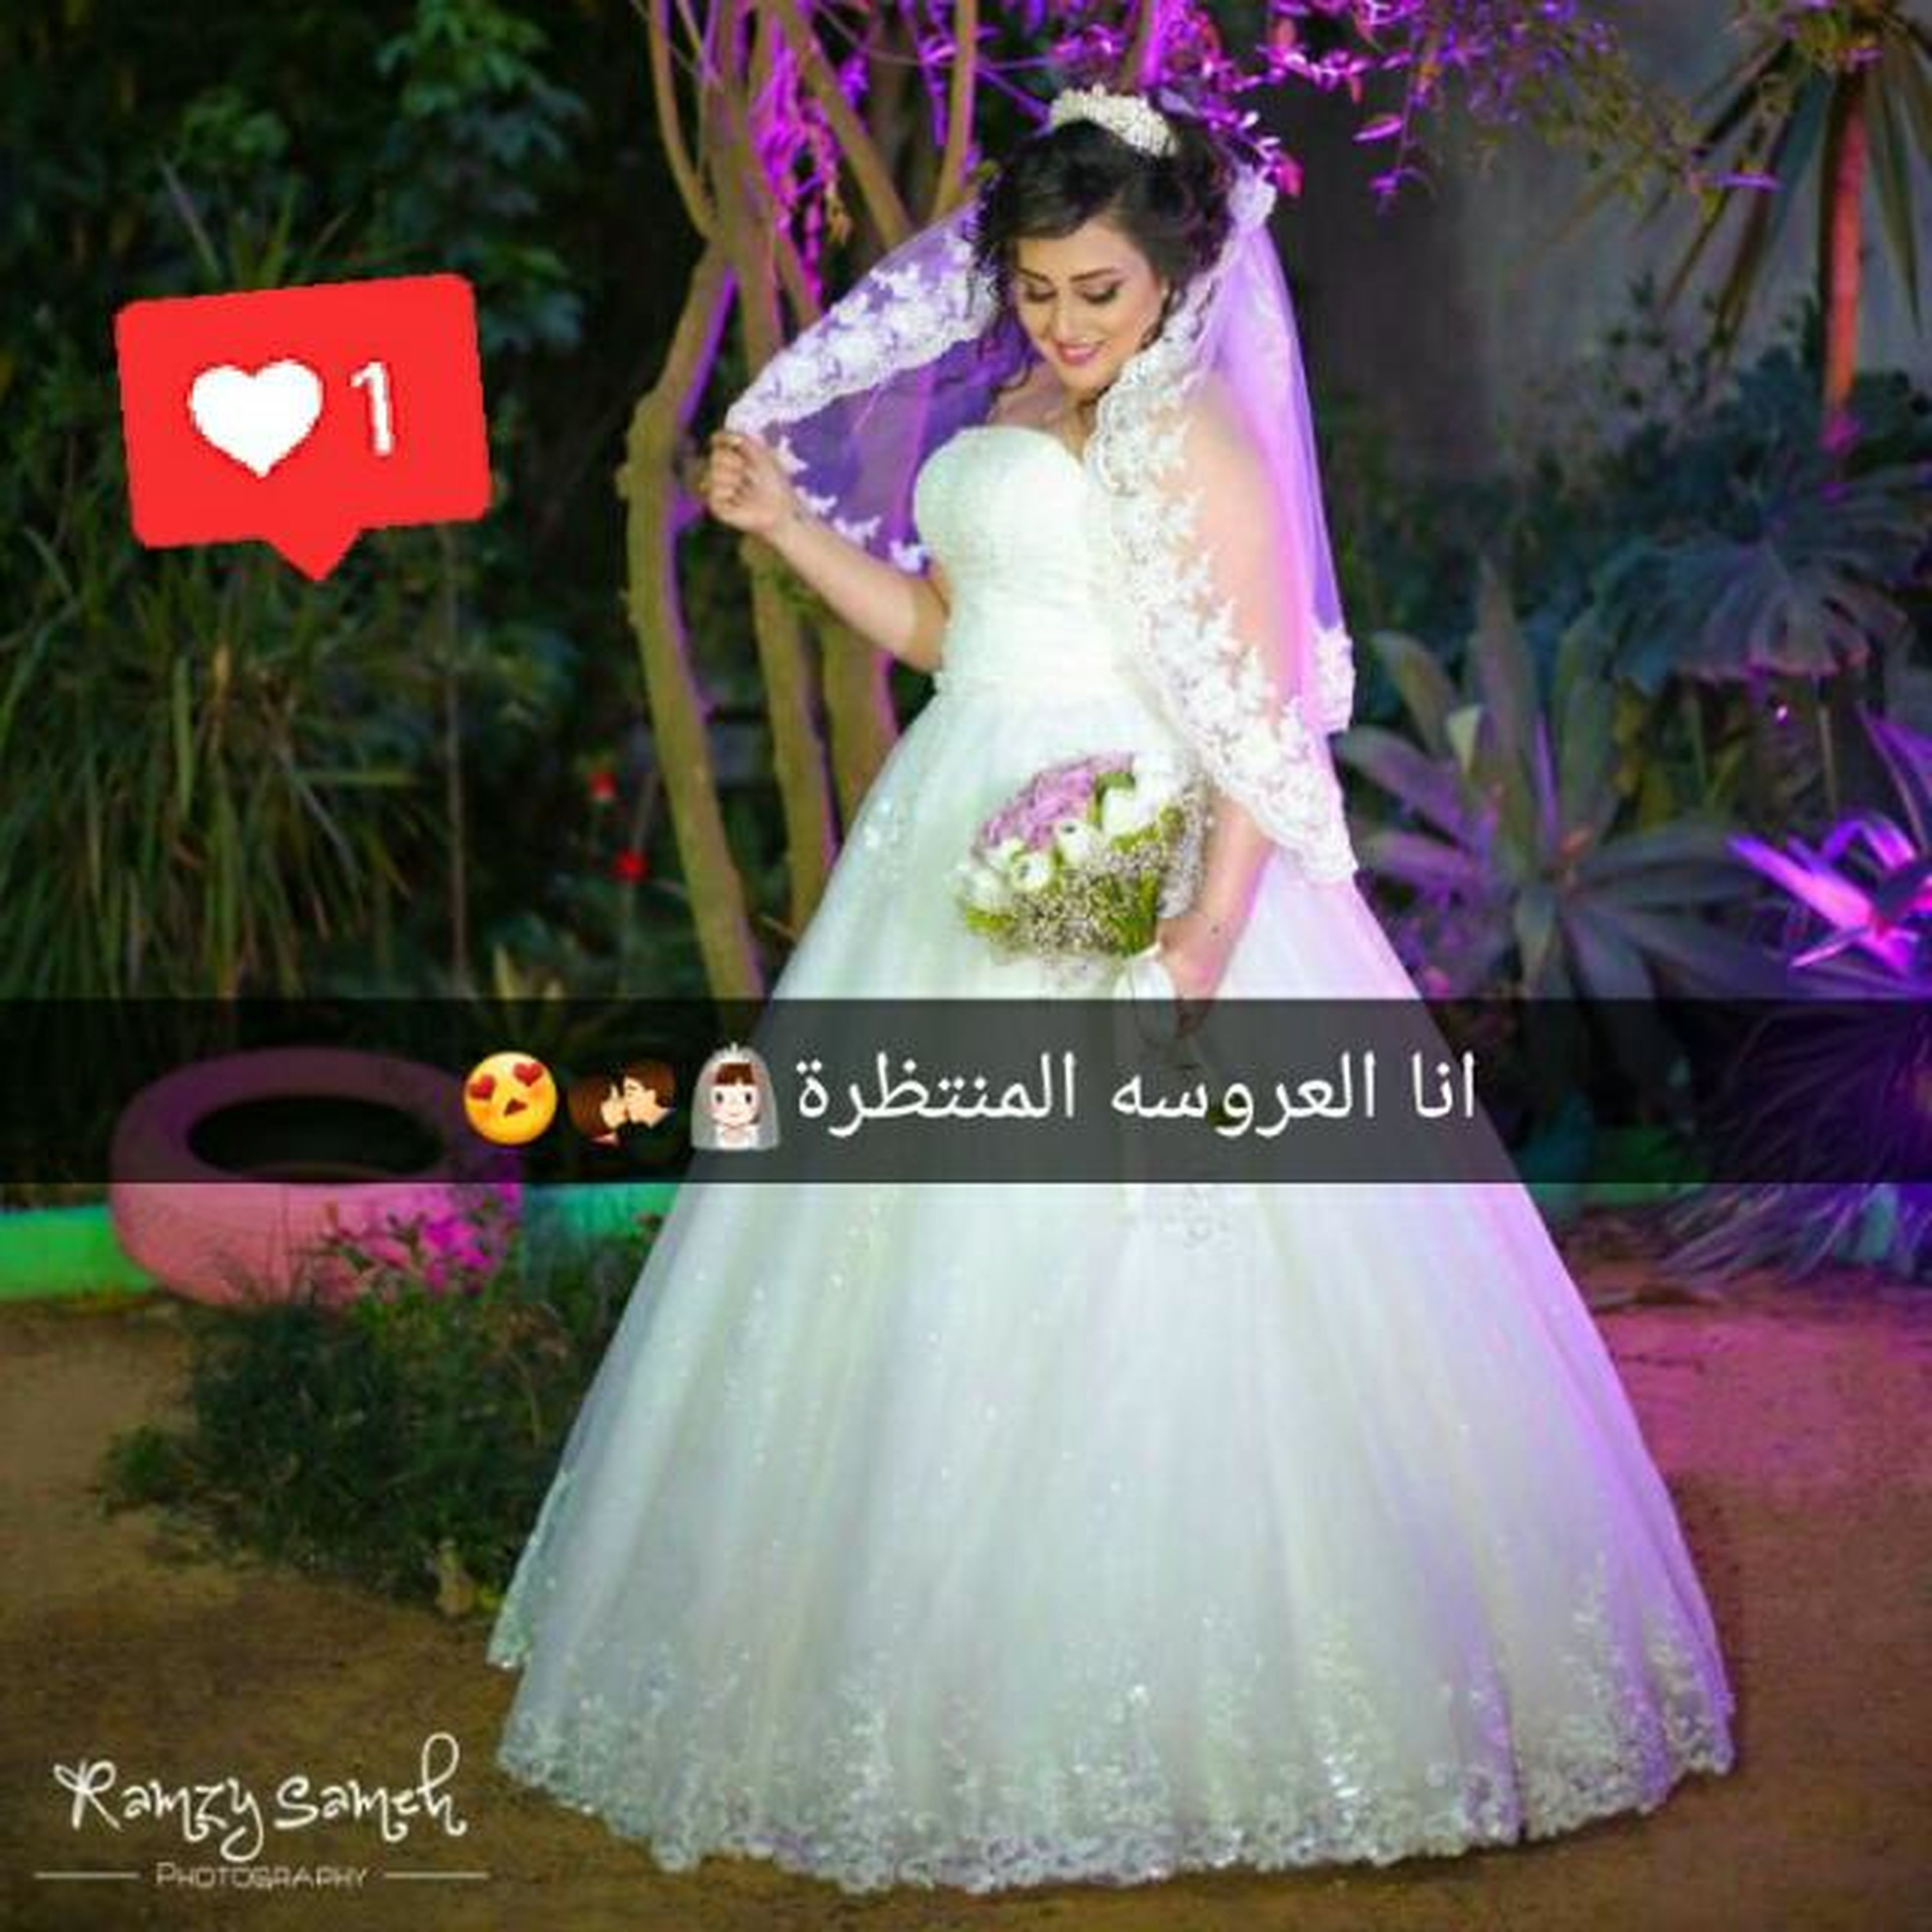 dress, one person, celebration, bride, formalwear, cheerful, people, wedding, young adult, adult, wife, event, happiness, fashion, party - social event, one young woman only, well-dressed, flower, evening gown, smiling, life events, wedding dress, one woman only, outdoors, adults only, tiara, only women, day